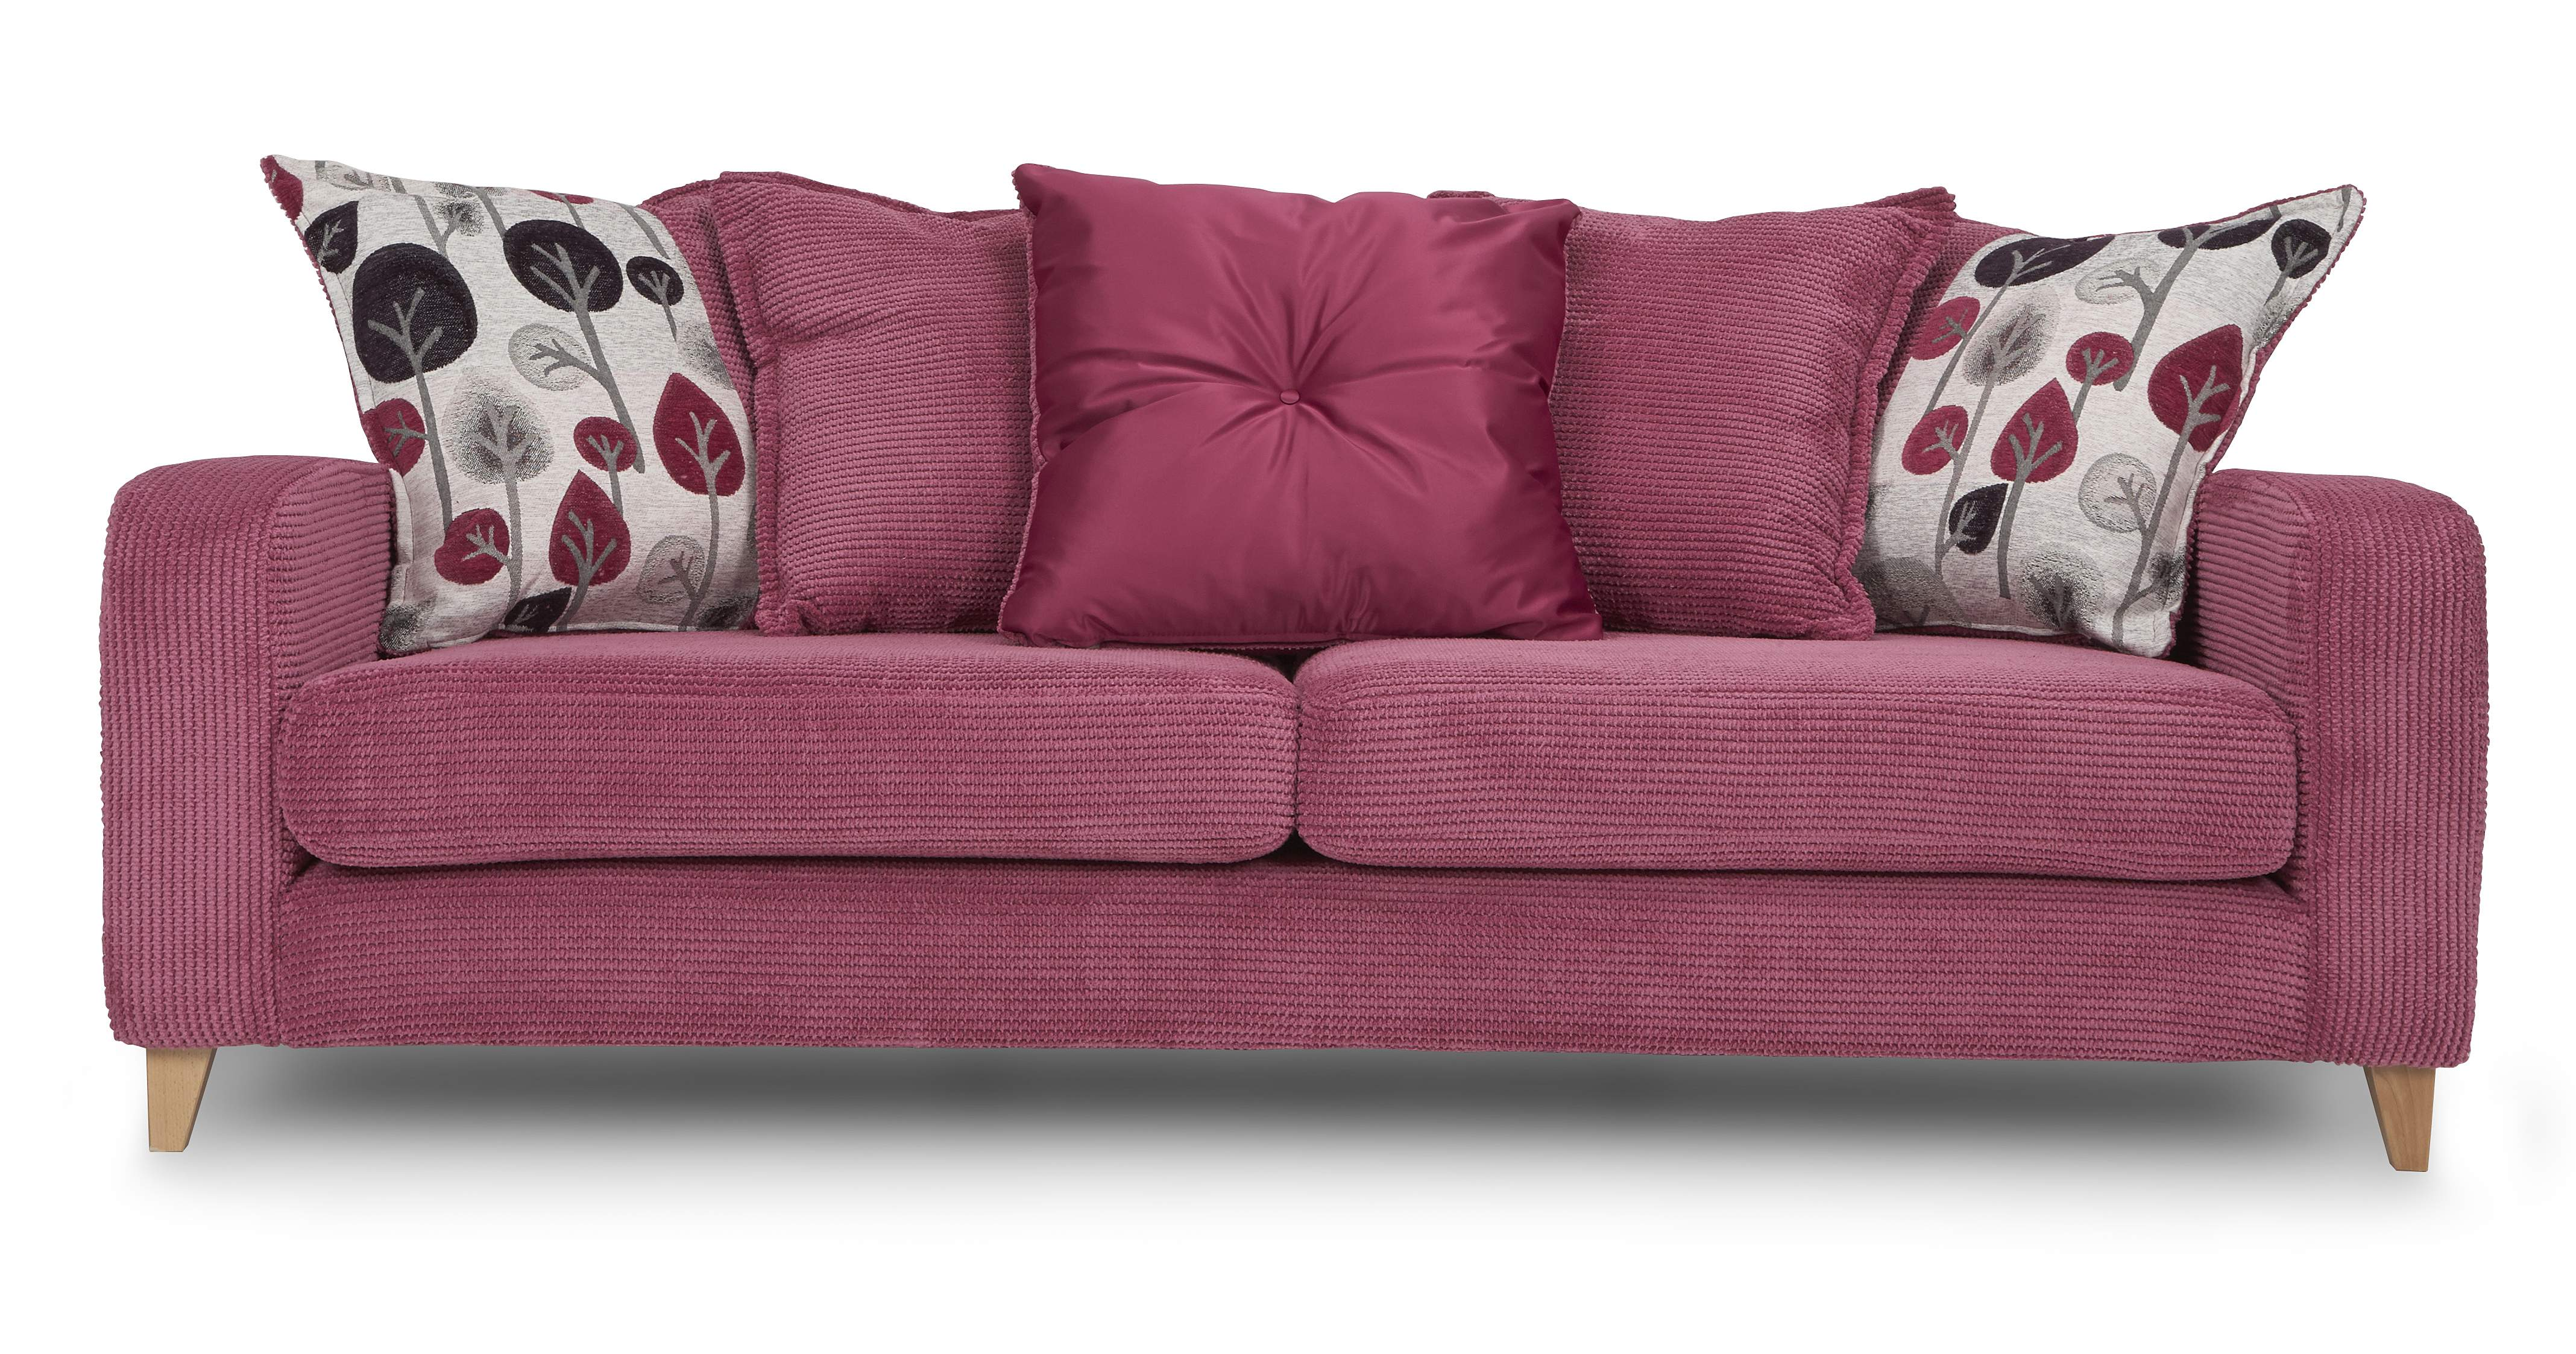 Dfs Blush Set Incl 4 Seater Pink Fabric Sofa 2 Seater